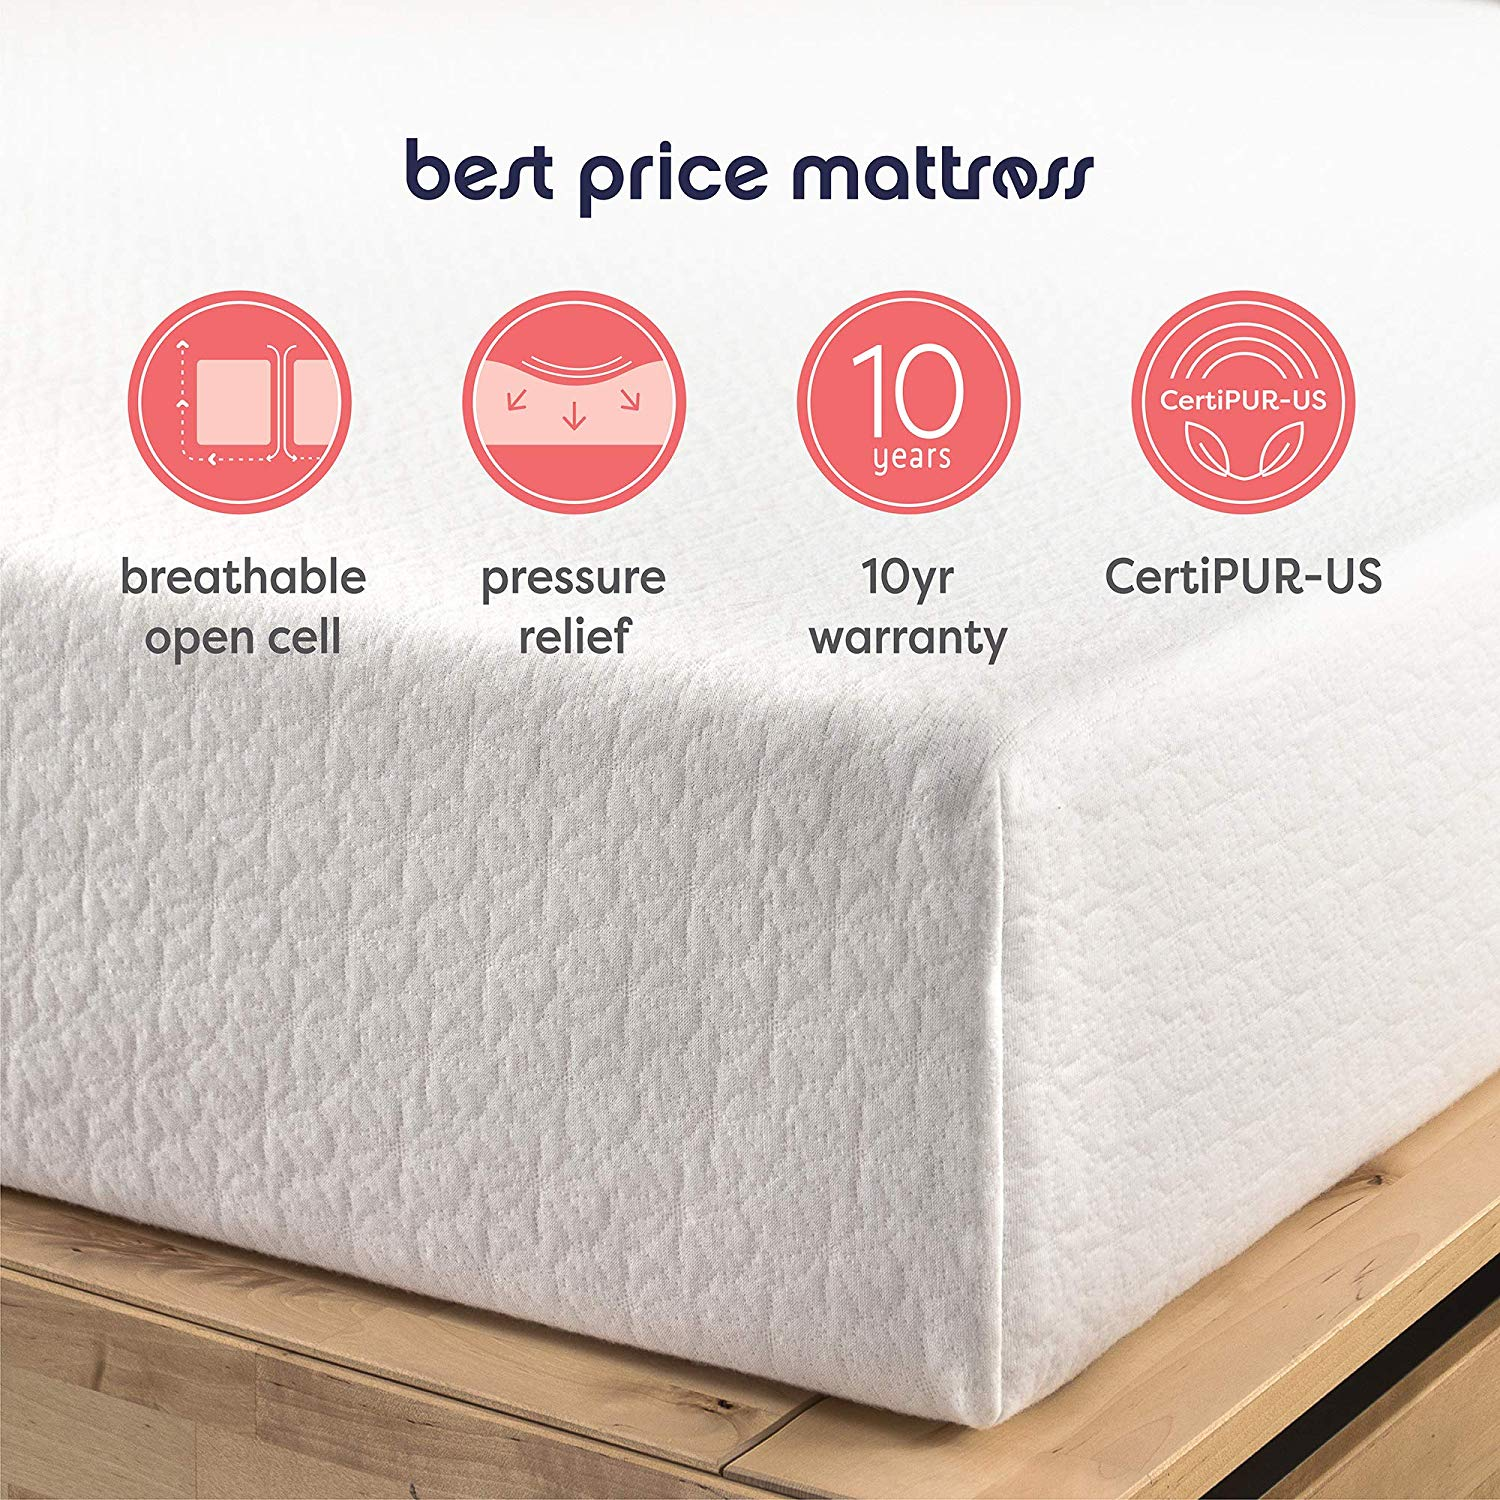 Best Price Mattress Memory Foam feathers